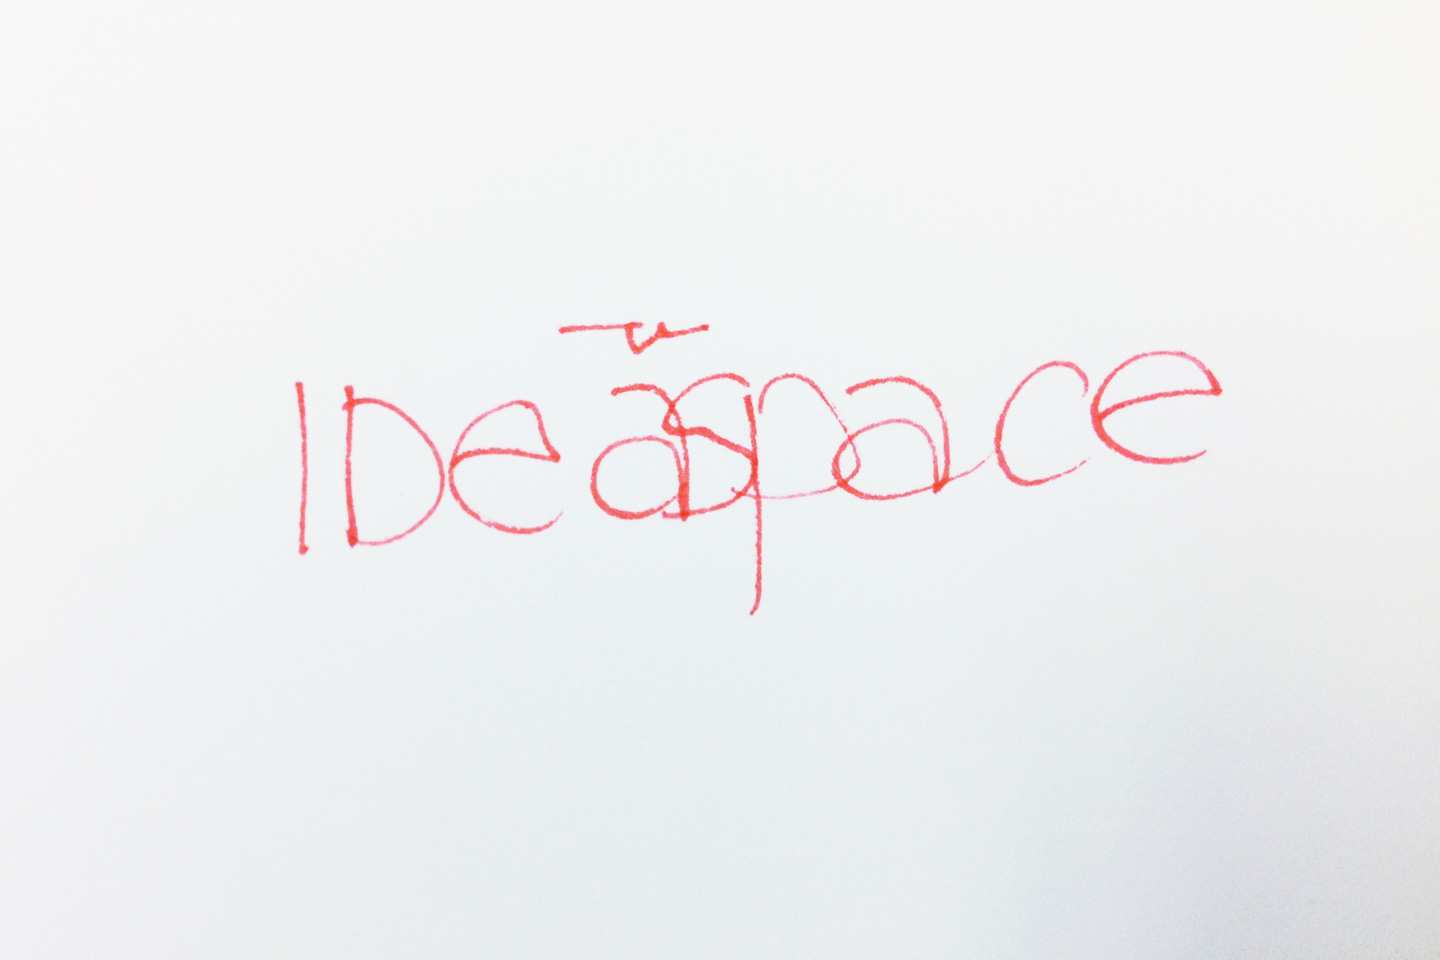 IDeaspace handwritten in red